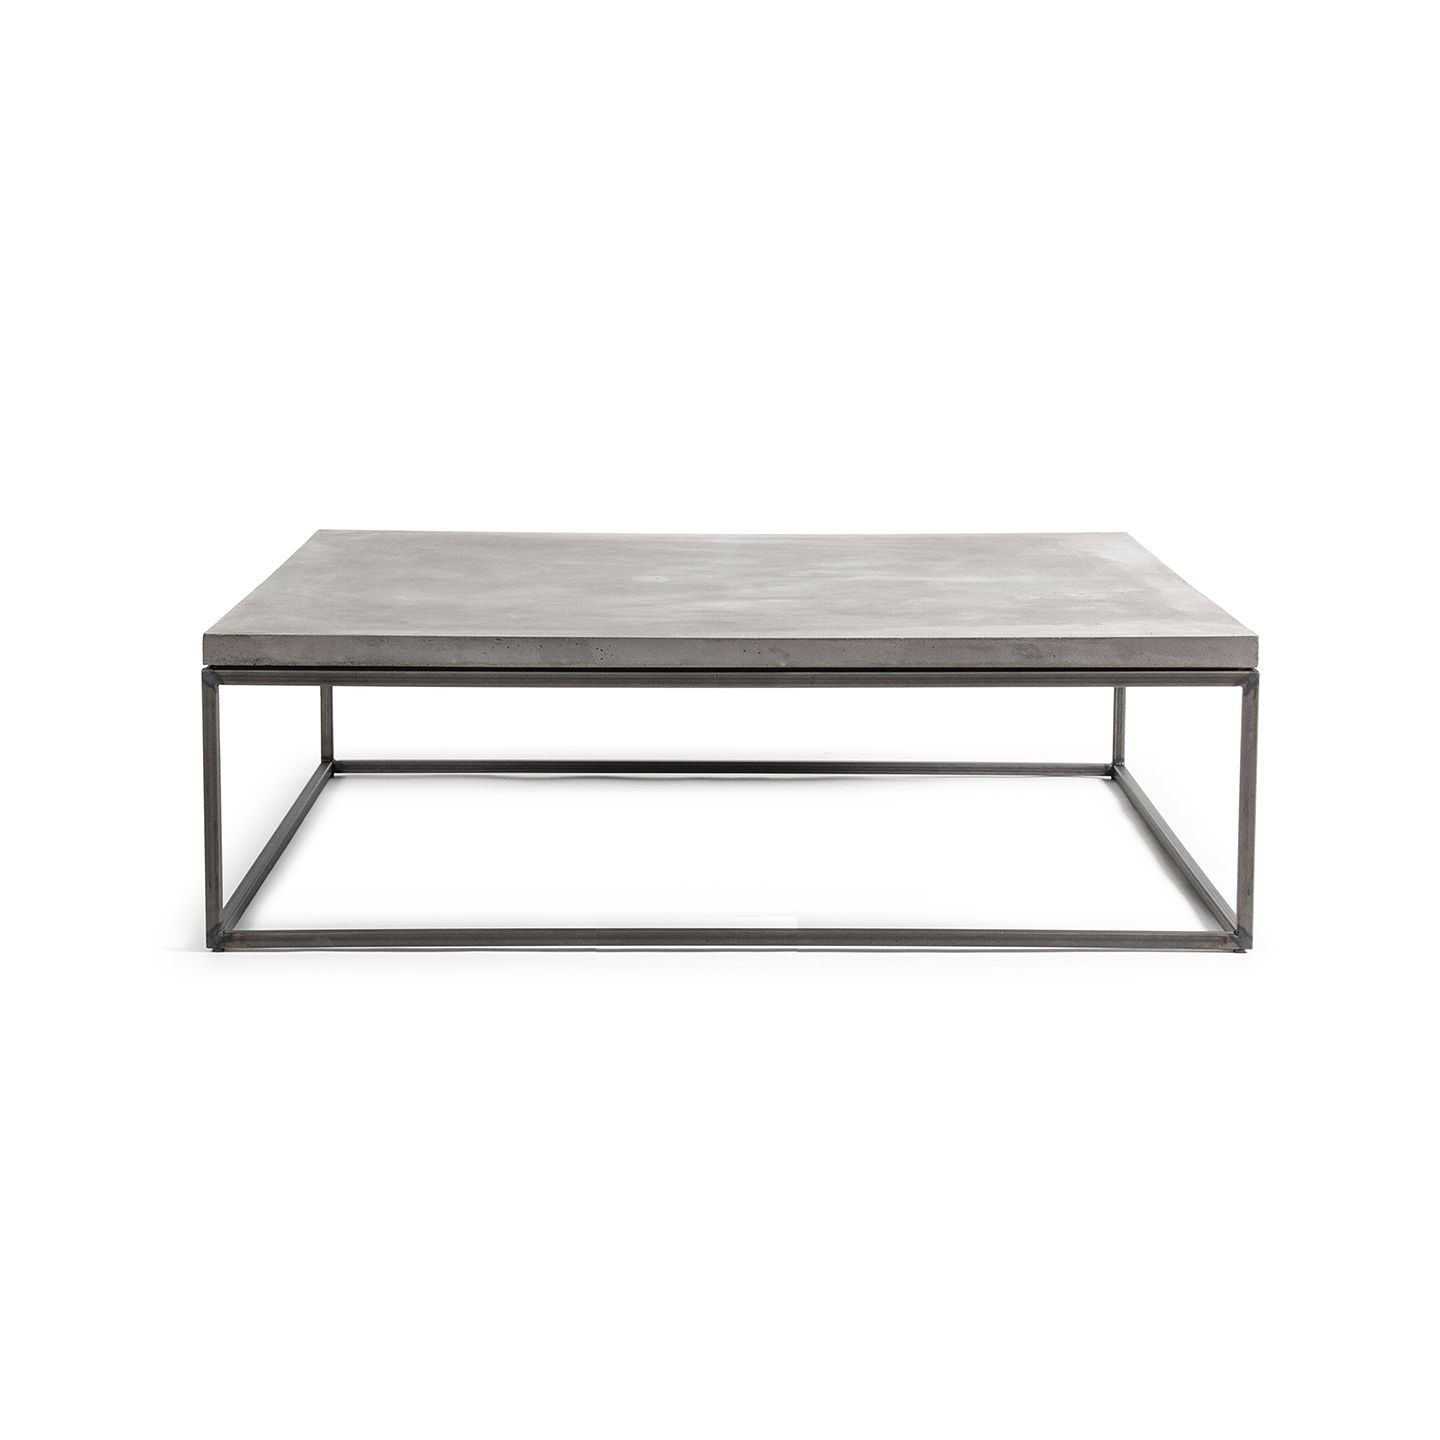 11 Lovely Metal Coffee Table Sets Throughout Fashionable Potomac Adjustable Coffee Tables (View 3 of 20)